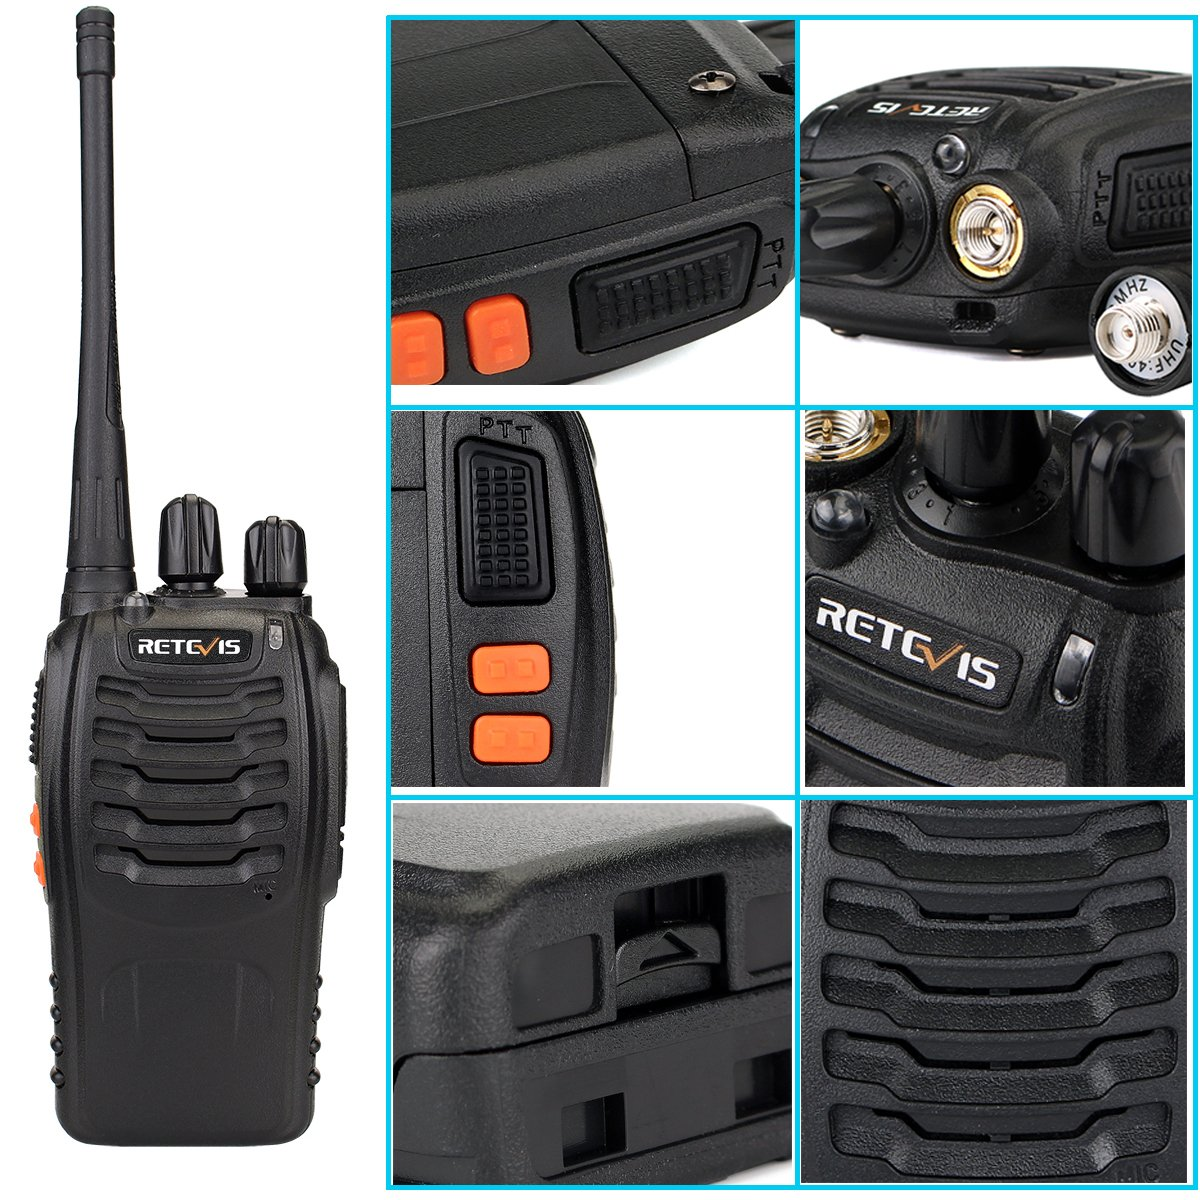 Retevis H-777 Two Way Radio UHF 400-470MHz Signal Frequency Single Band 16 CH Walkie Talkies with Original Earpiece (10 Pack) by Retevis (Image #4)